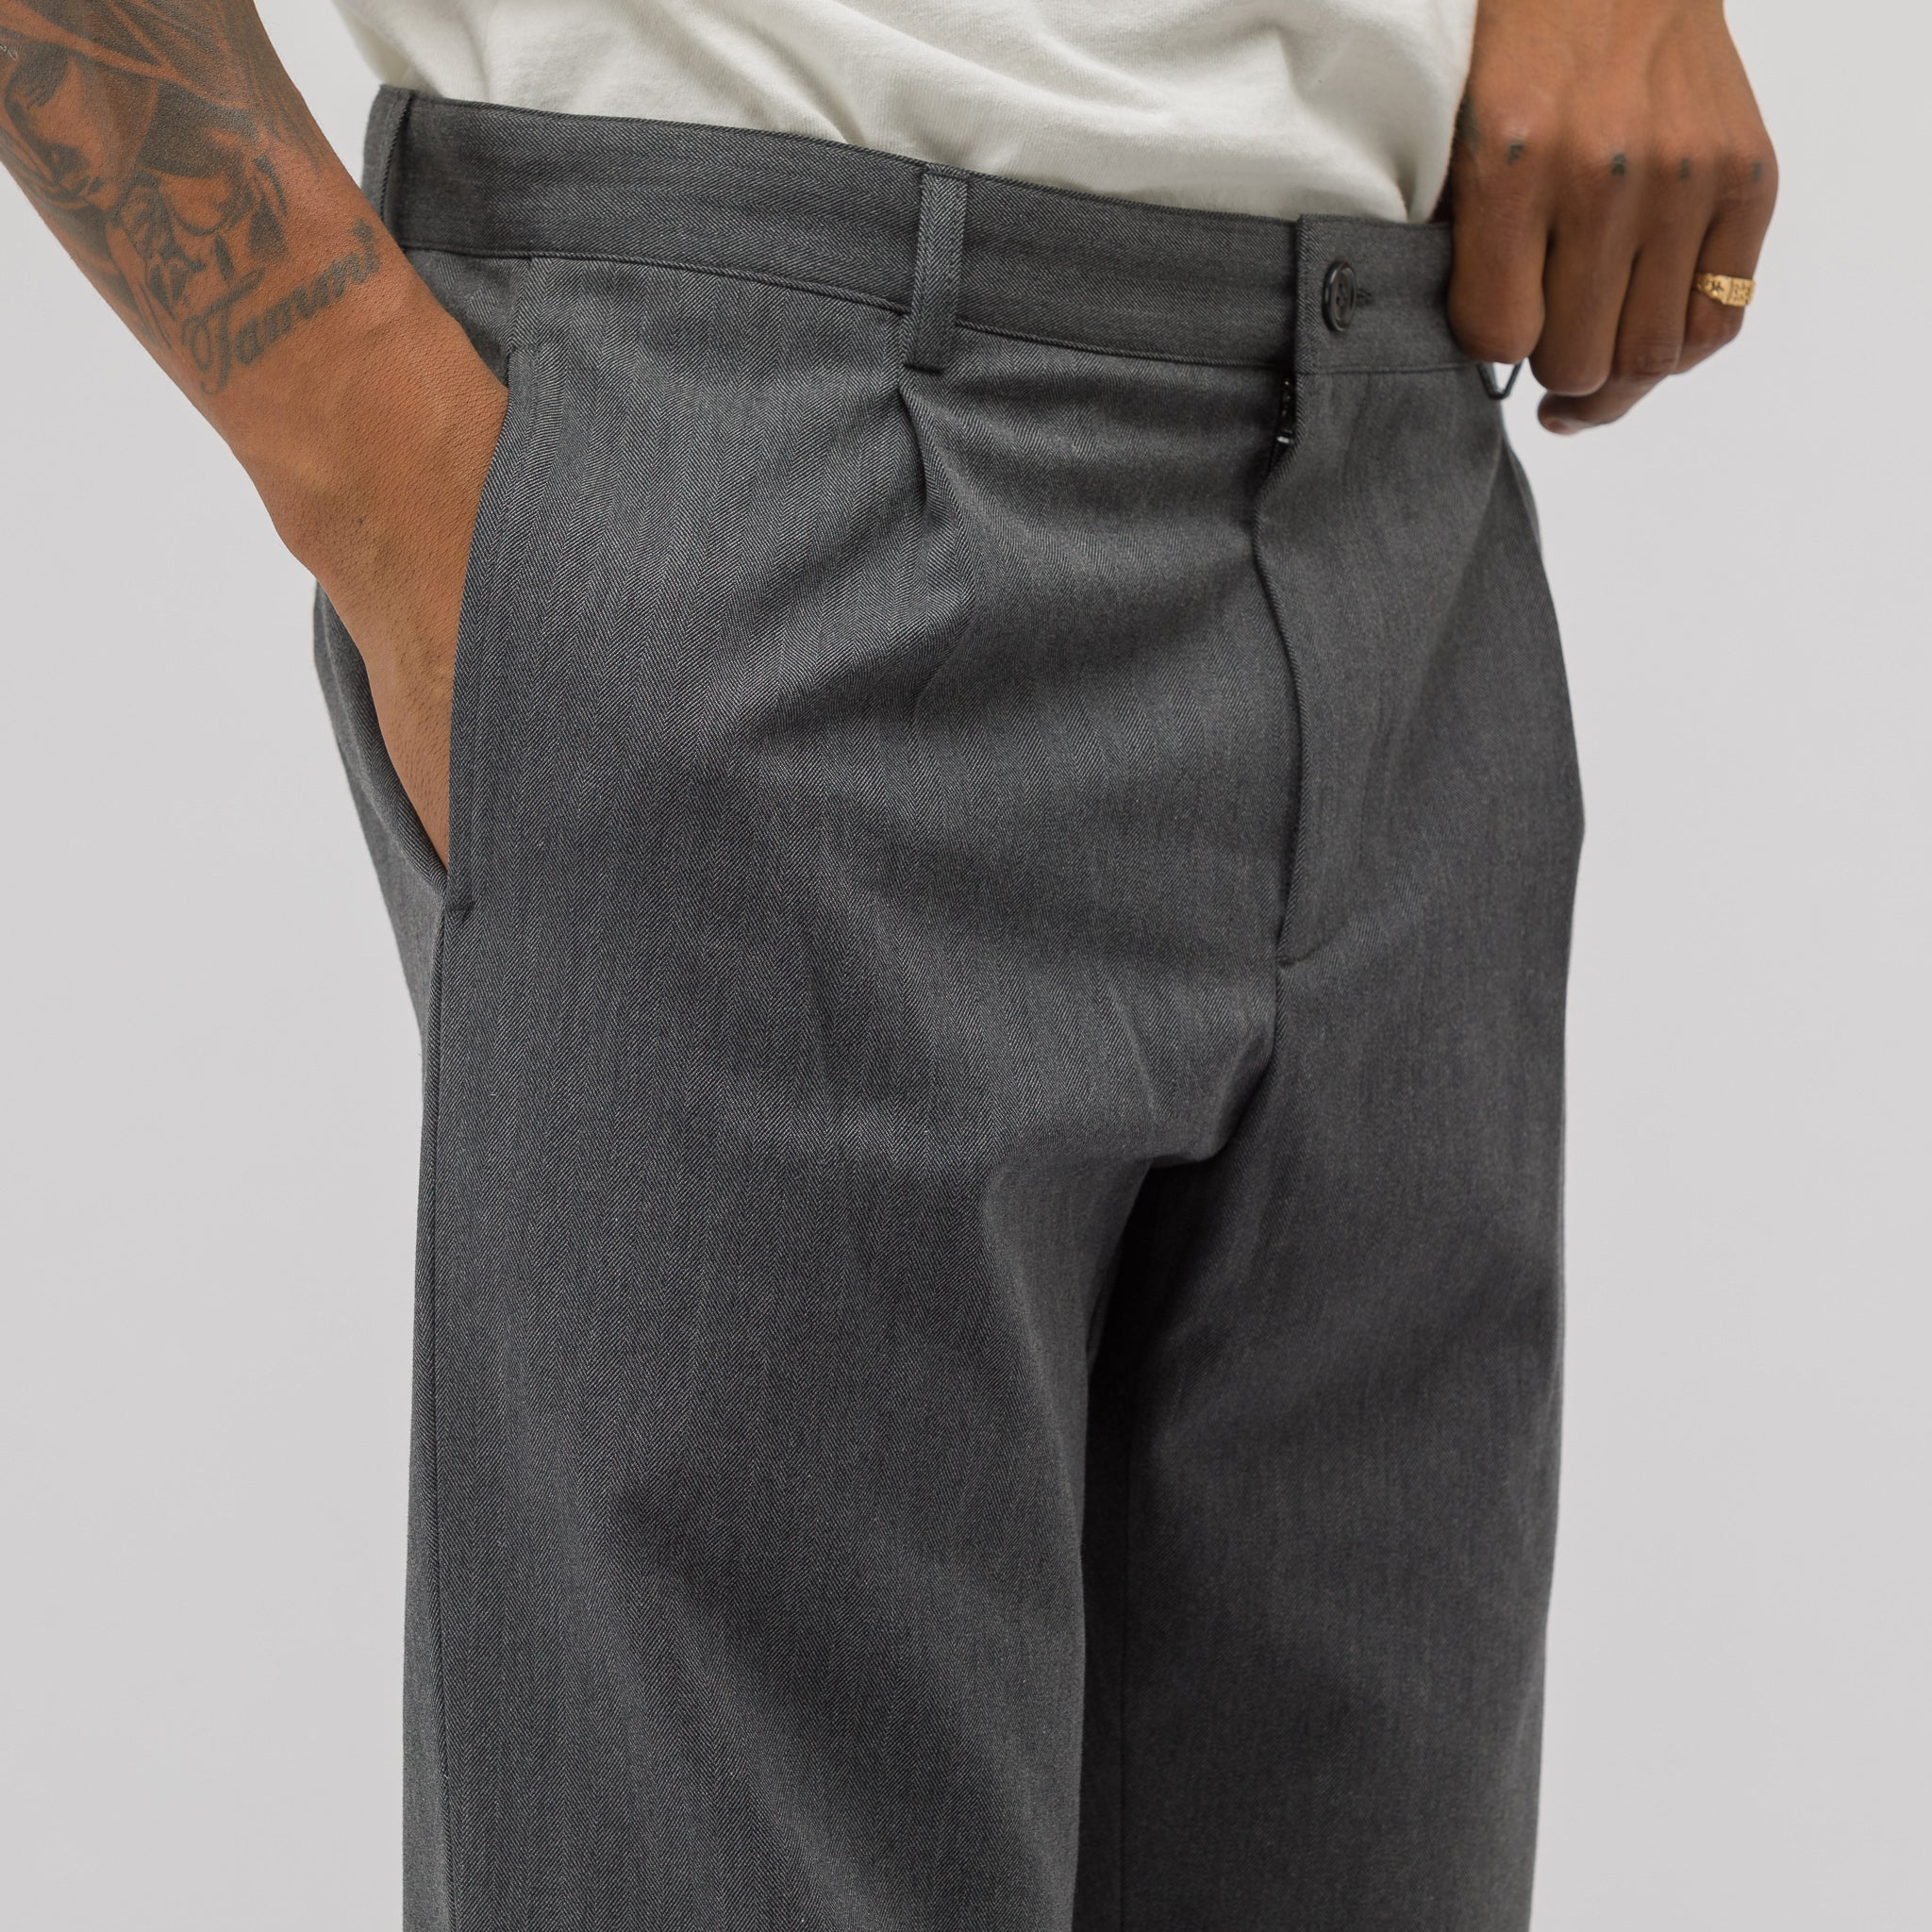 Florian Pants in Heathered Charcoal Grey